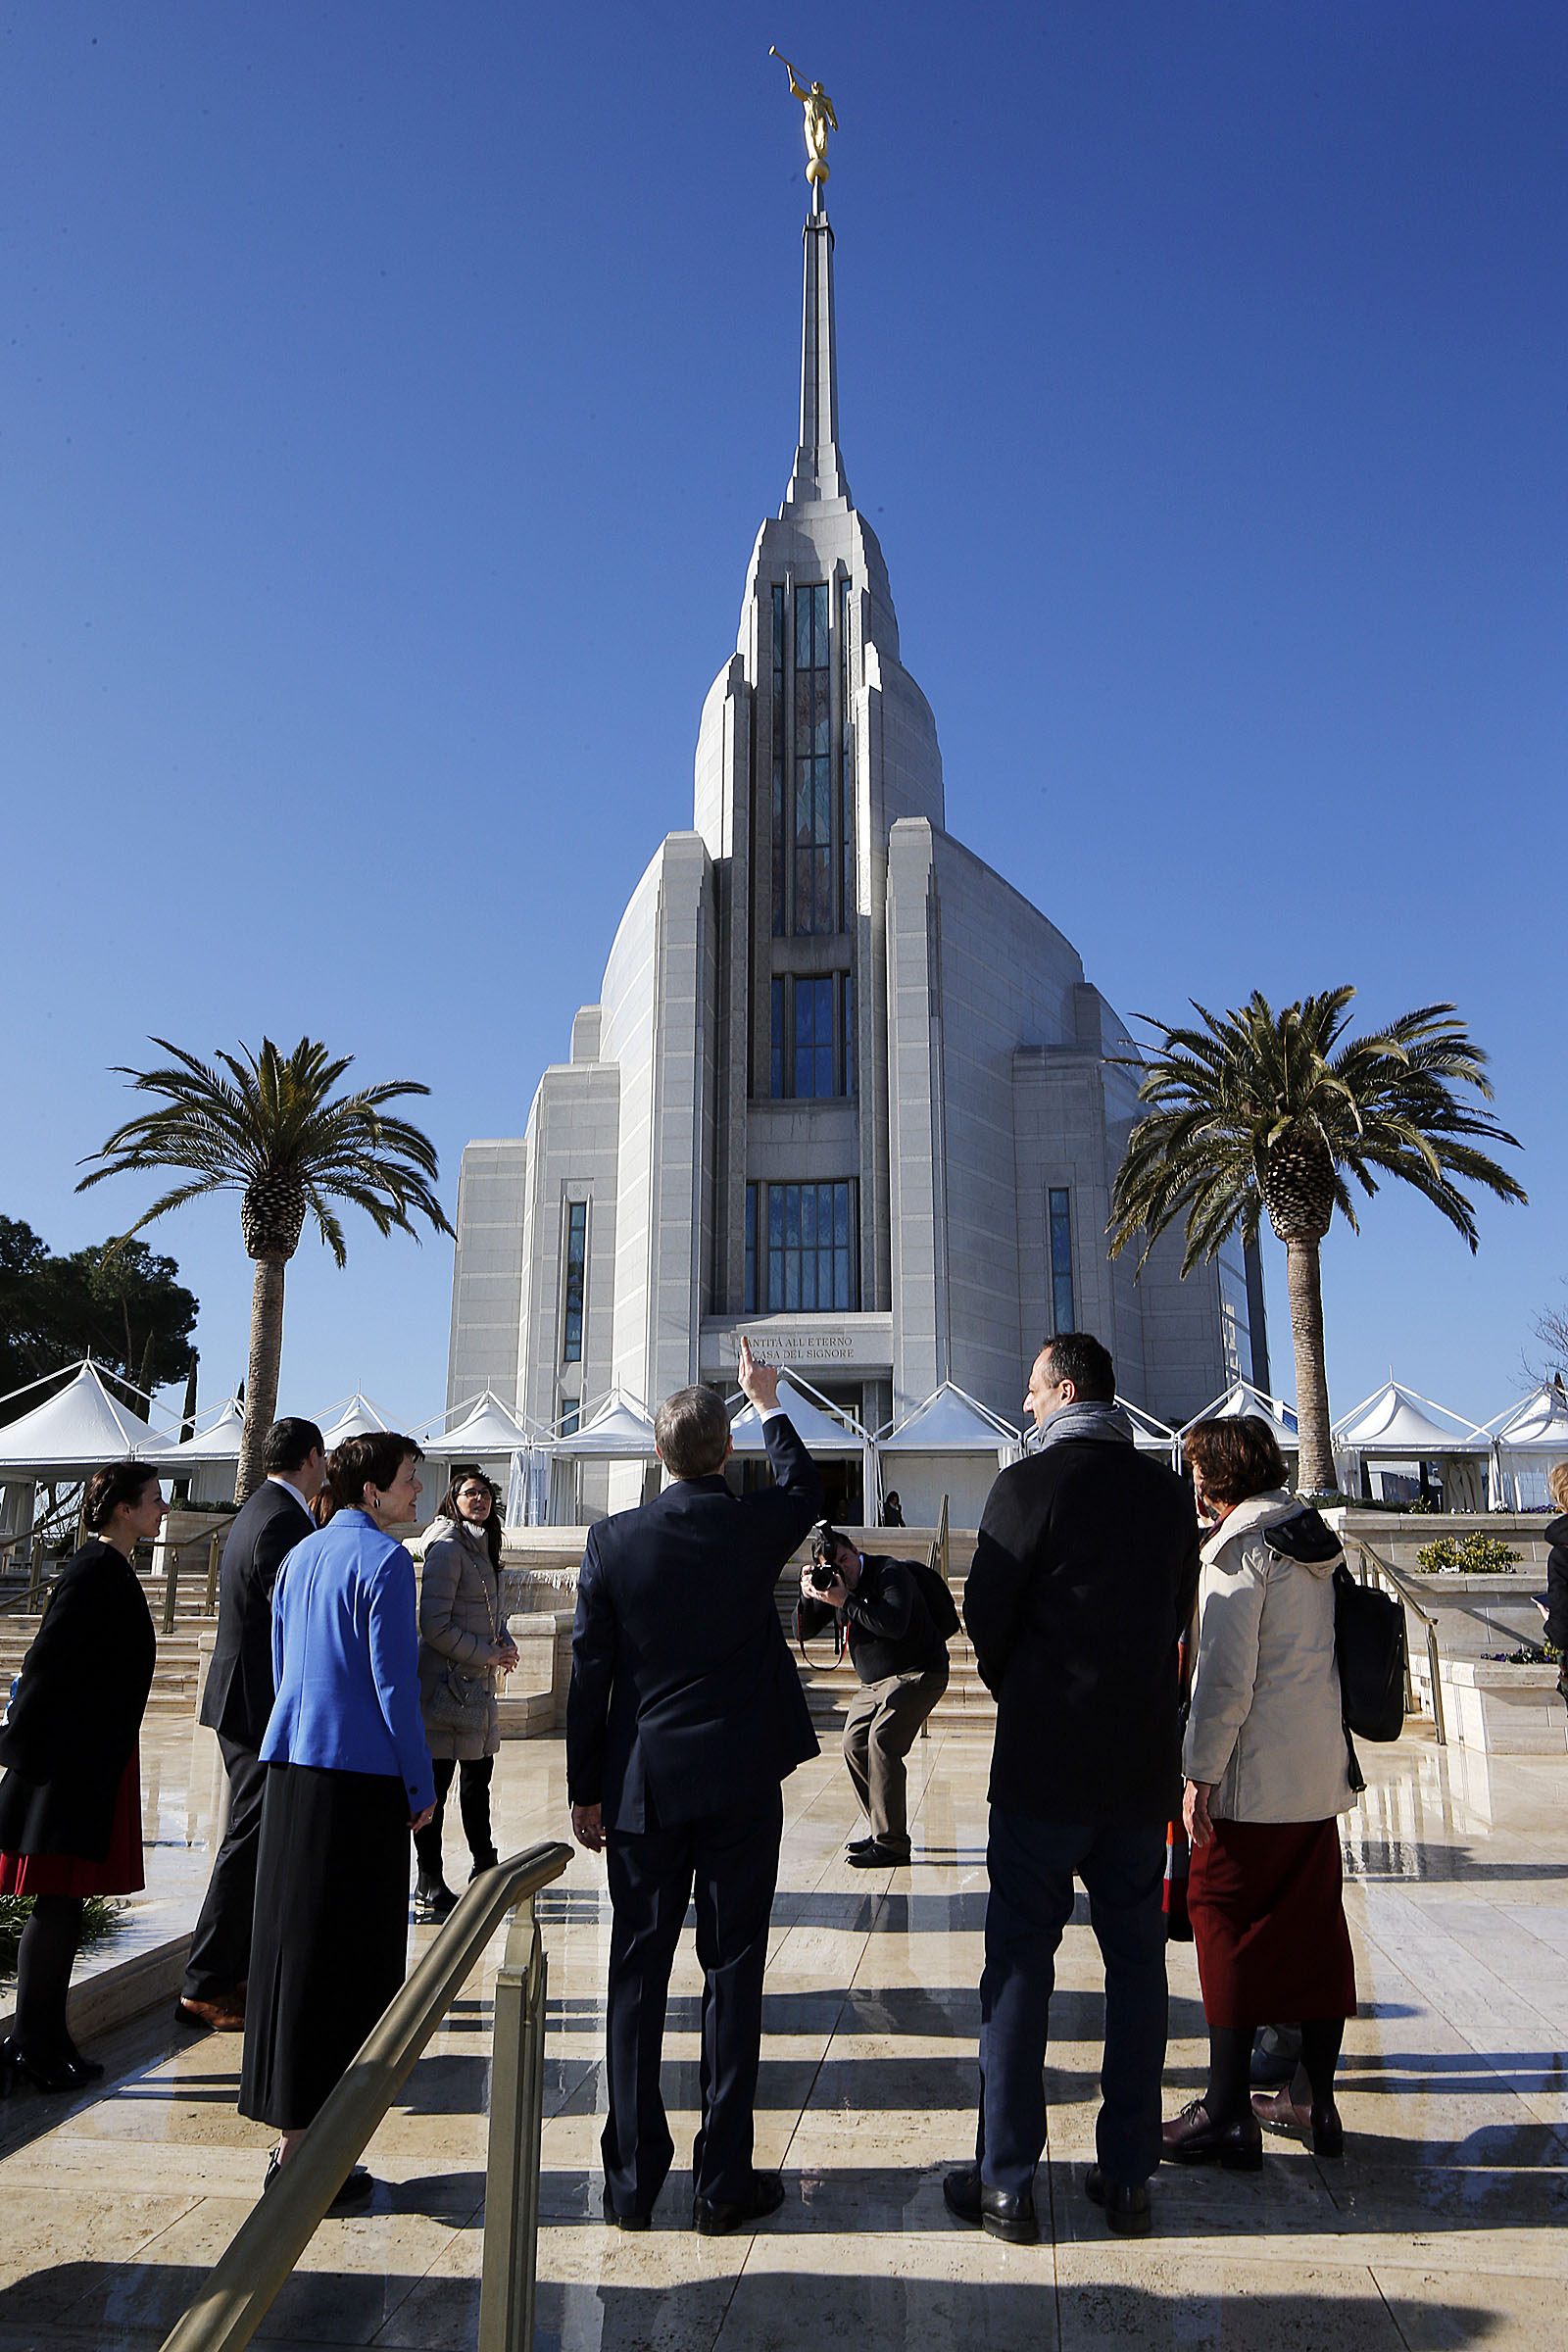 Elder David A. Bednar of the Quorum of the Twelve Apostles of The Church of Jesus Christ of Latter-day Saints points out features of the Rome Italy Temple on Monday, Jan. 14, 2019. At right is President Marcello De Vito of the Rome City Council. At left is Elder Bednar's wife, Sister Susan Bednar.